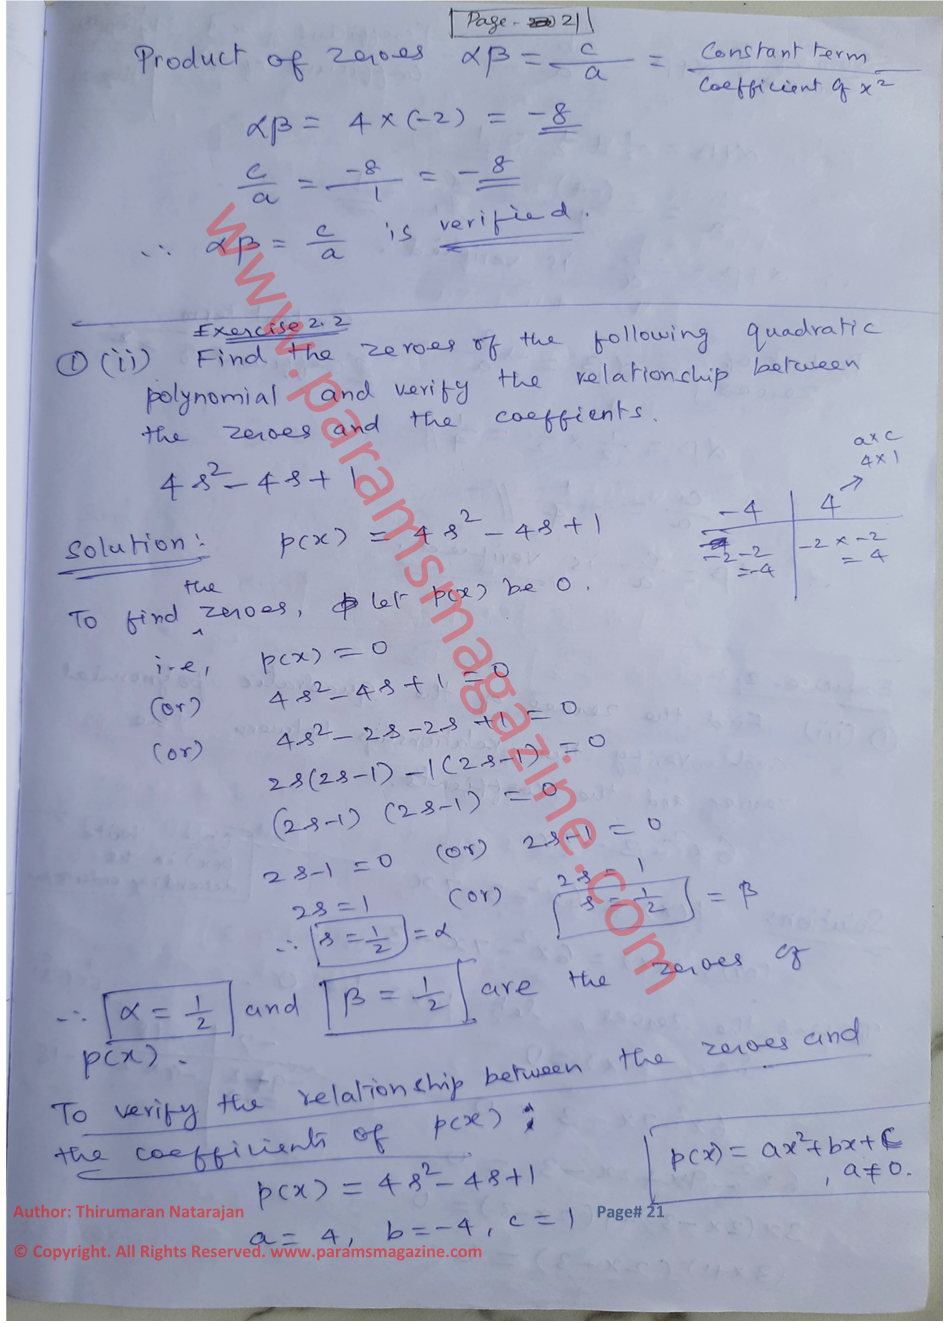 Class-10 - Polynomials - Notes - Page-21